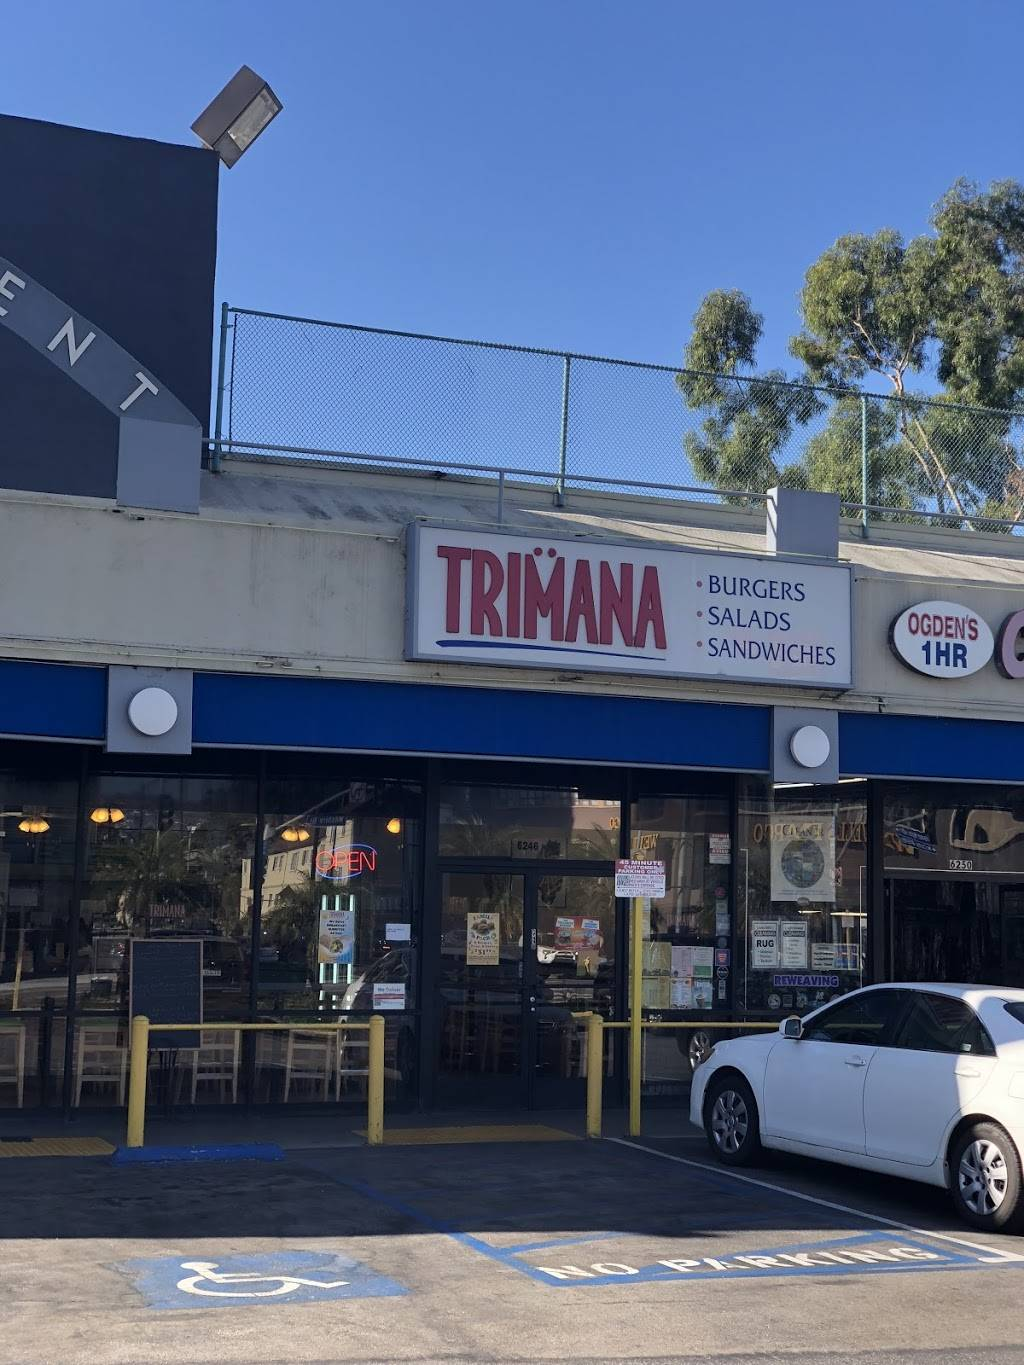 Trimana Grill | meal takeaway | 6246 Wilshire Blvd, Los Angeles, CA 90048, USA | 3239334080 OR +1 323-933-4080